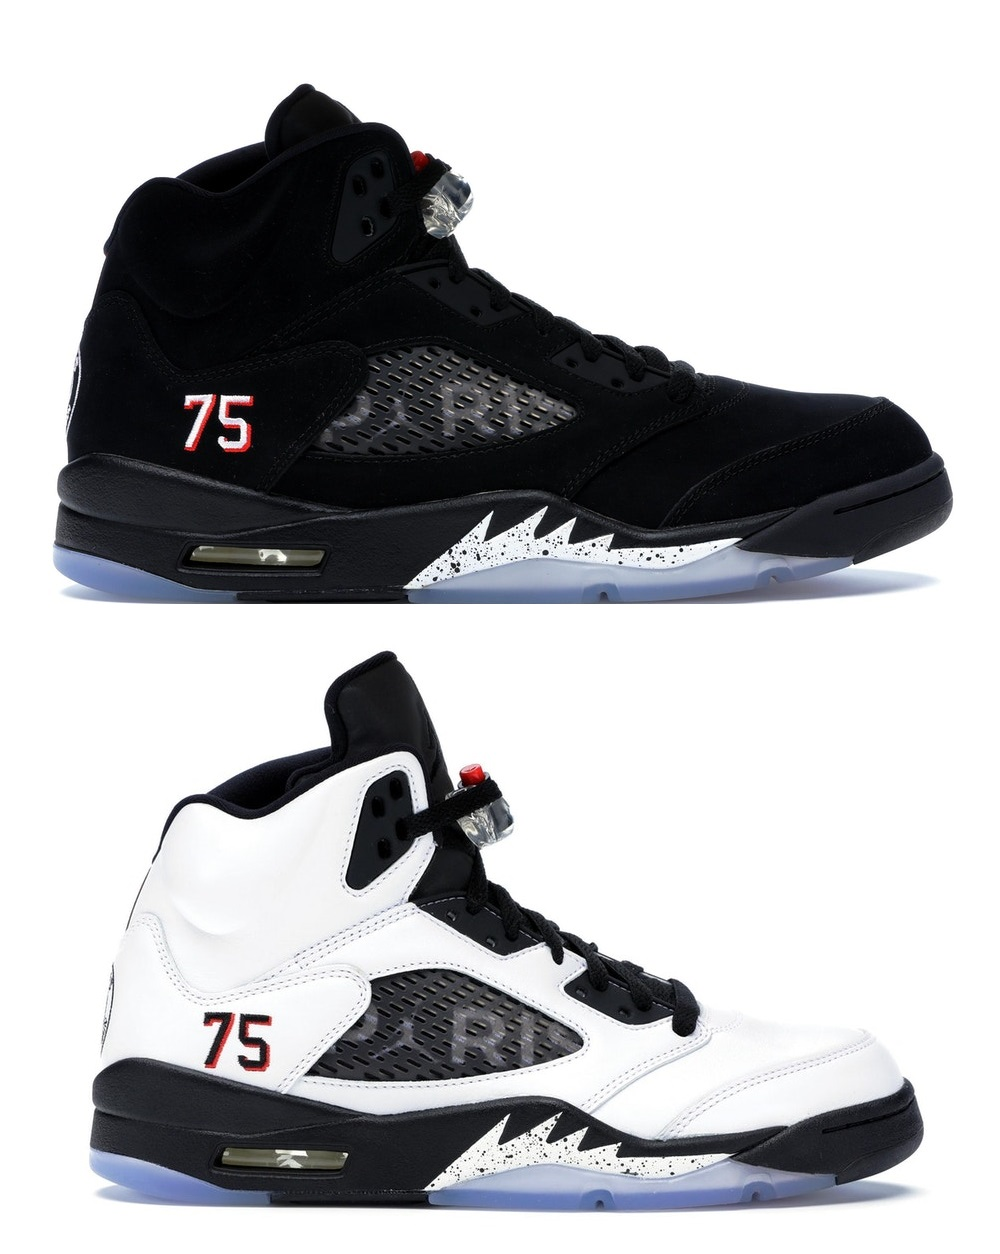 Air Jordan 5 Paris Saint-Germain Pack #1